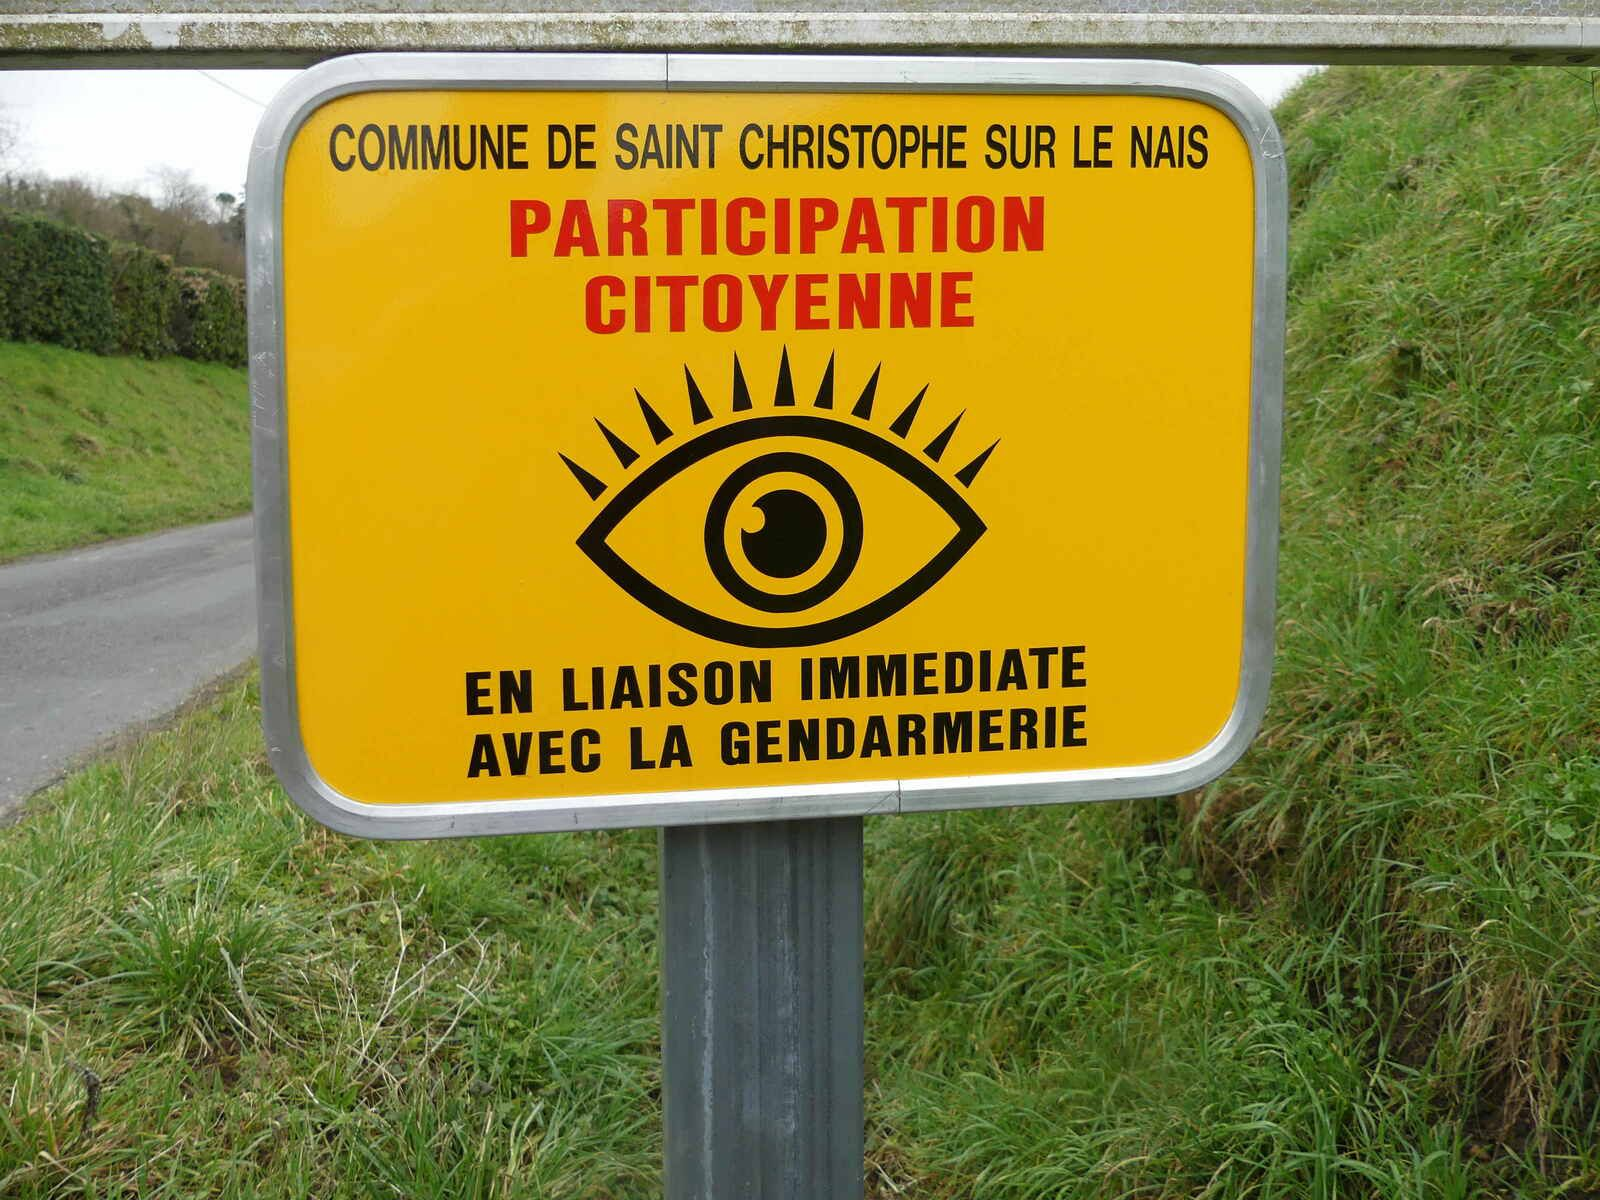 Saint-Christophe-sur-le-Nais, village  estampillé « Participation citoyenne »